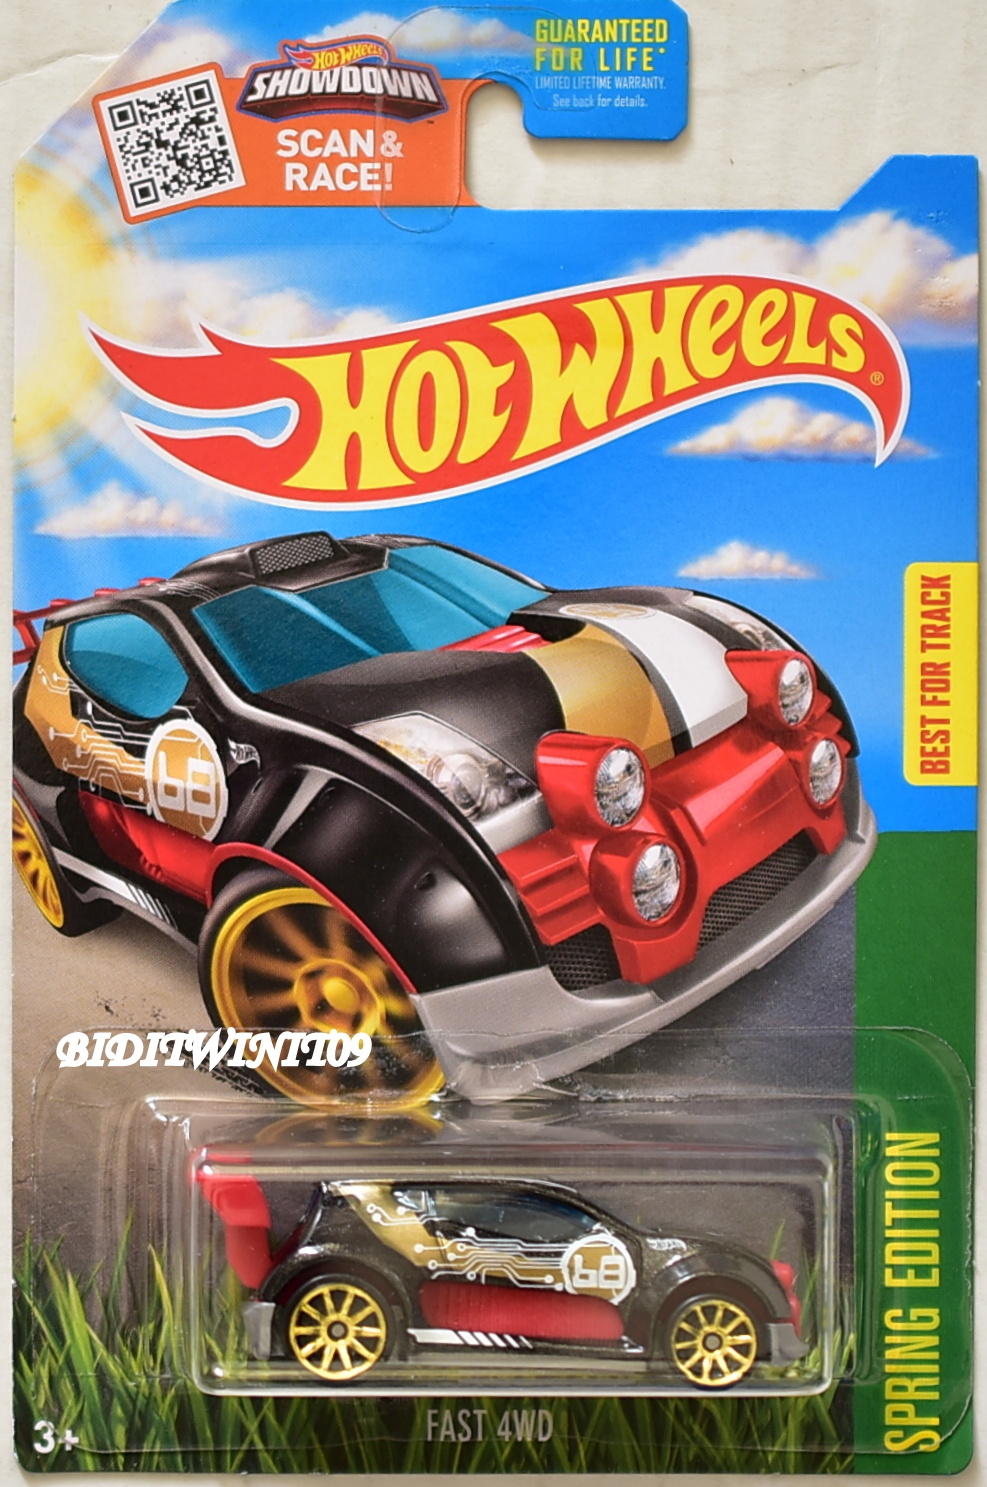 HOT WHEELS 2016 SPRING EDITION FAST 4WD TARGET